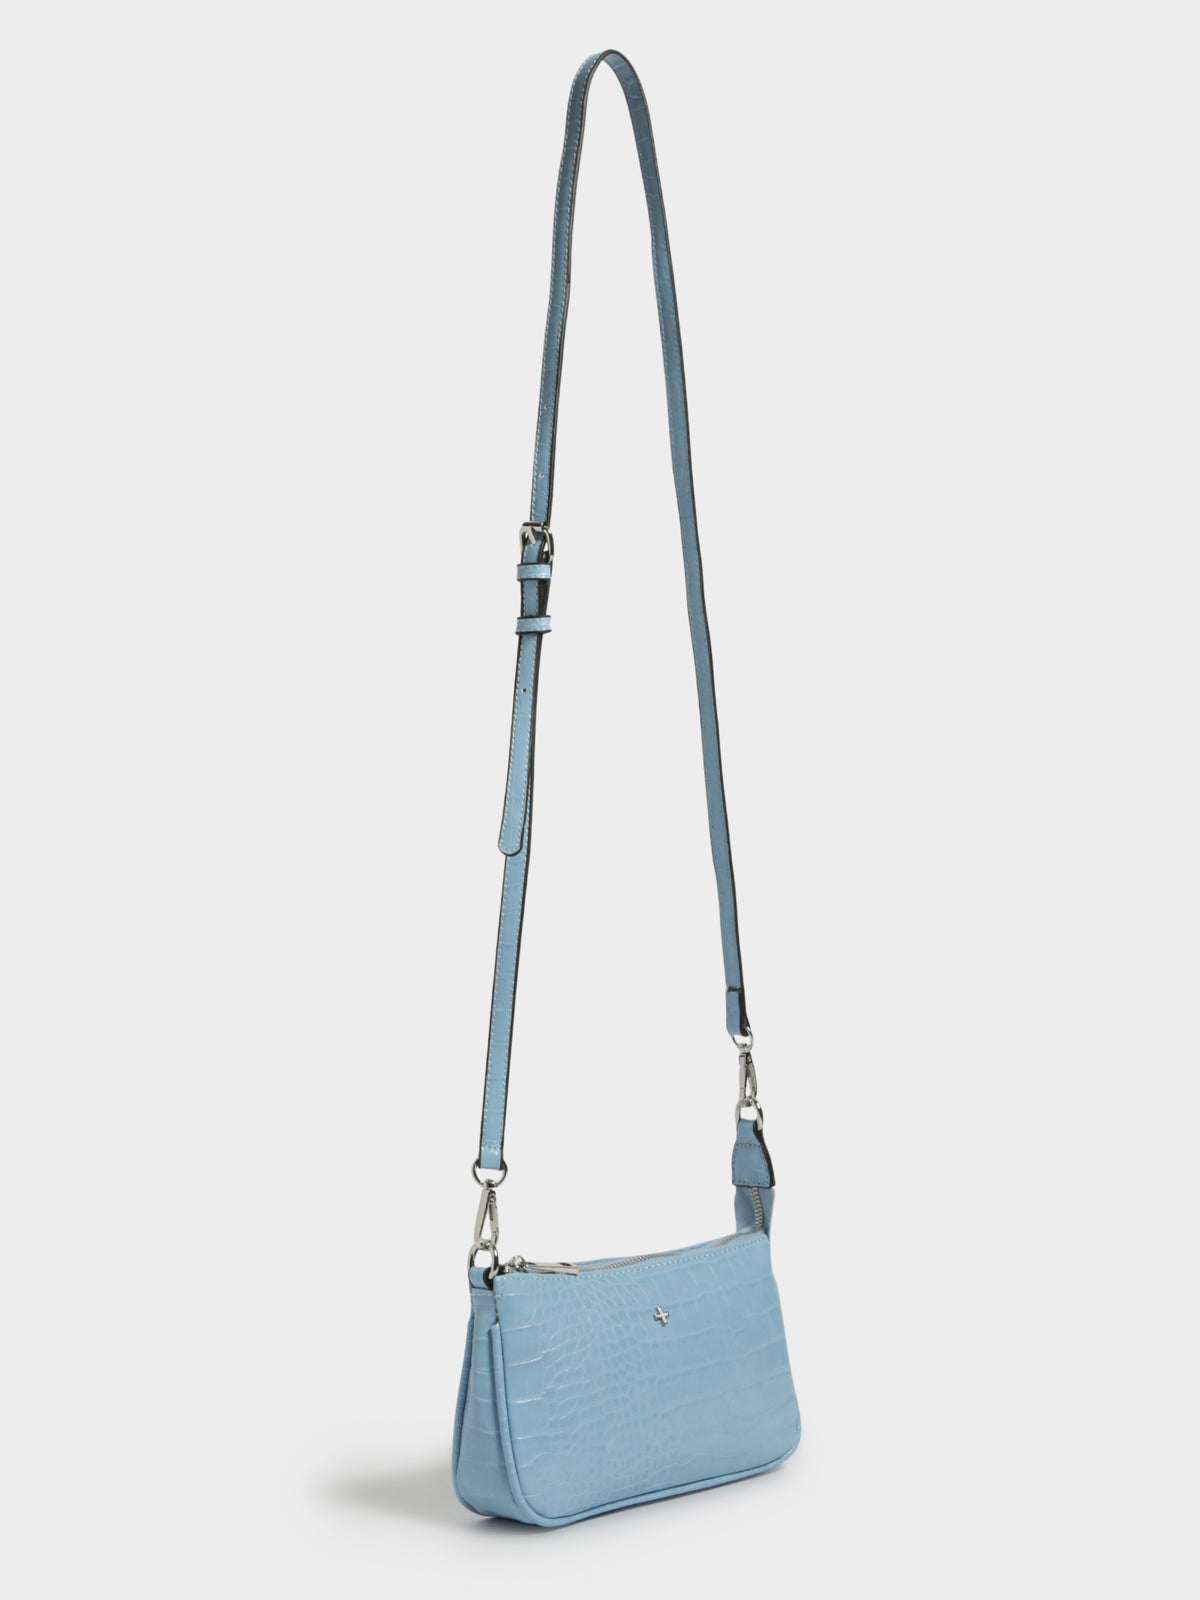 Reign Bag in Pastel Blue Croc